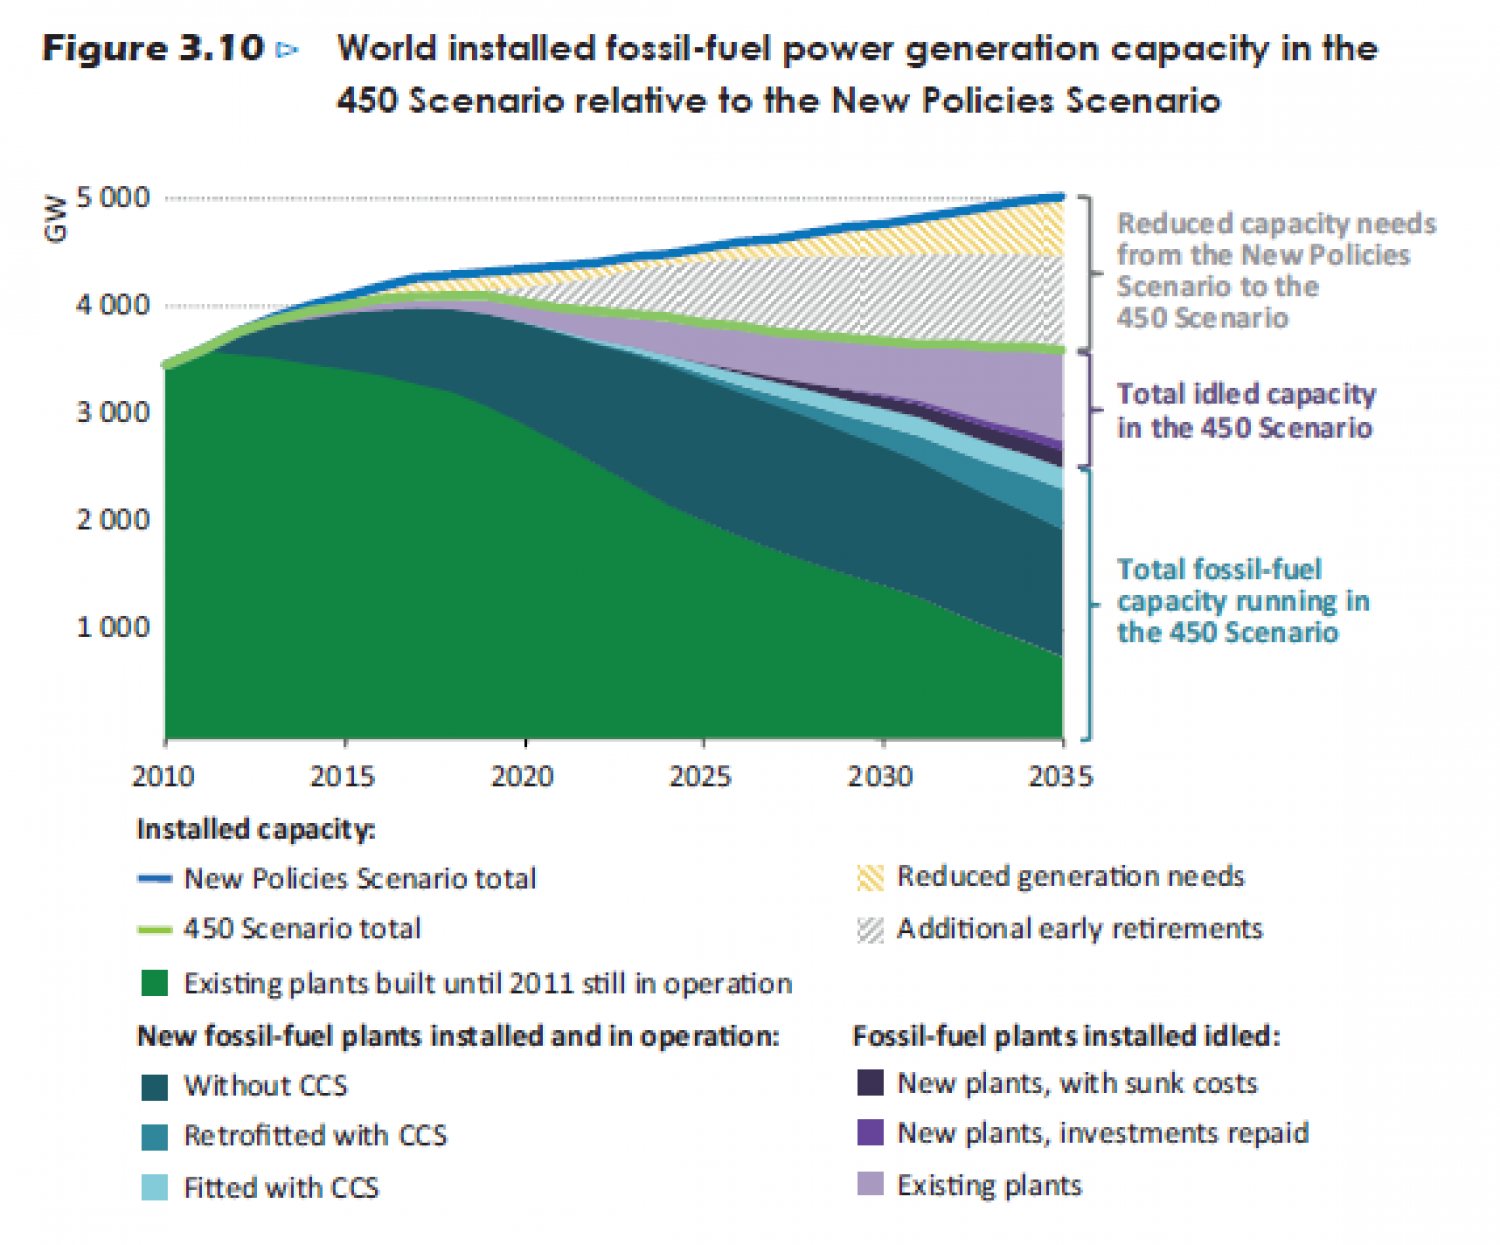 World installed fossil-fuel power generation capacity in the 450 Scenario relative to the New Policies Scenario Infographic